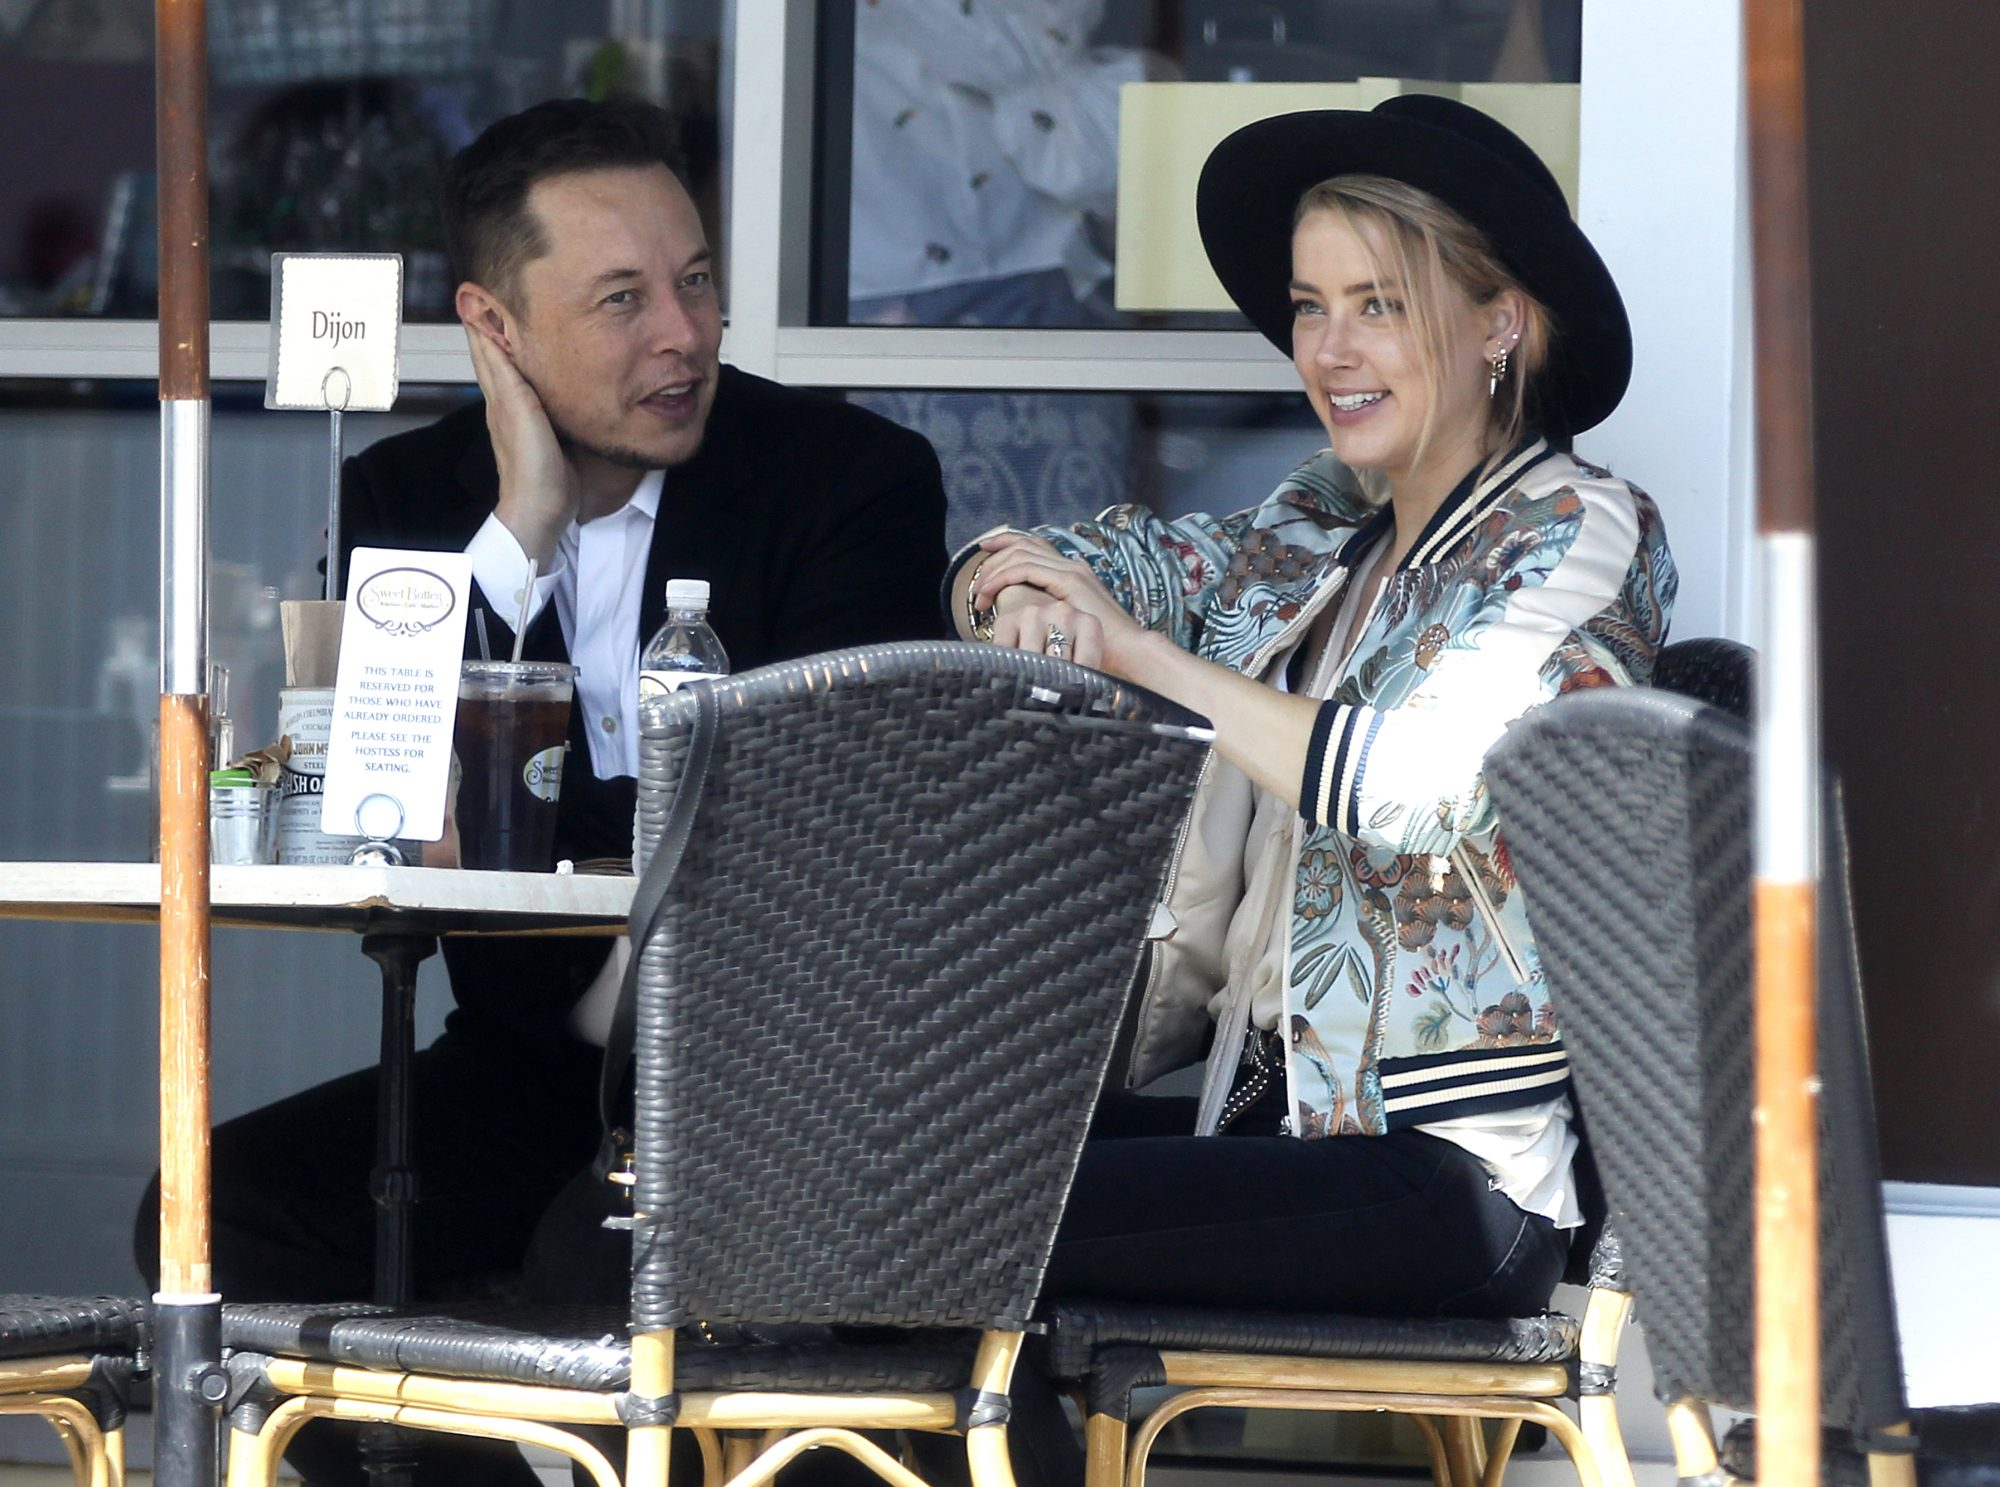 EXCLUSIVE: Elon Musk and Amber Heard spotted going for lunch at Sweet Butter restaurant in Sherman Oaks